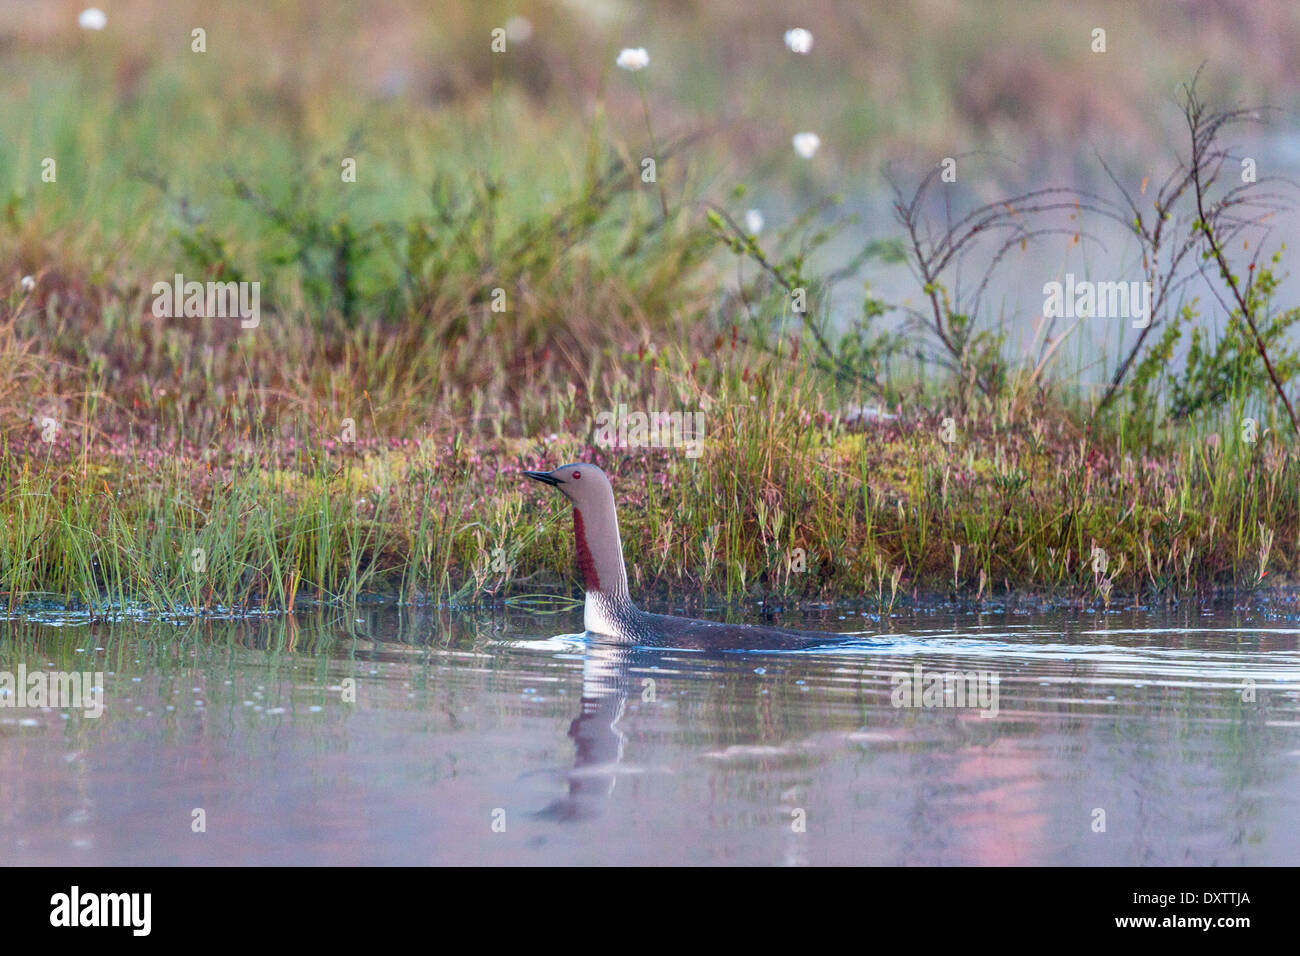 Red throated loon swimming at the water edge - Stock Image